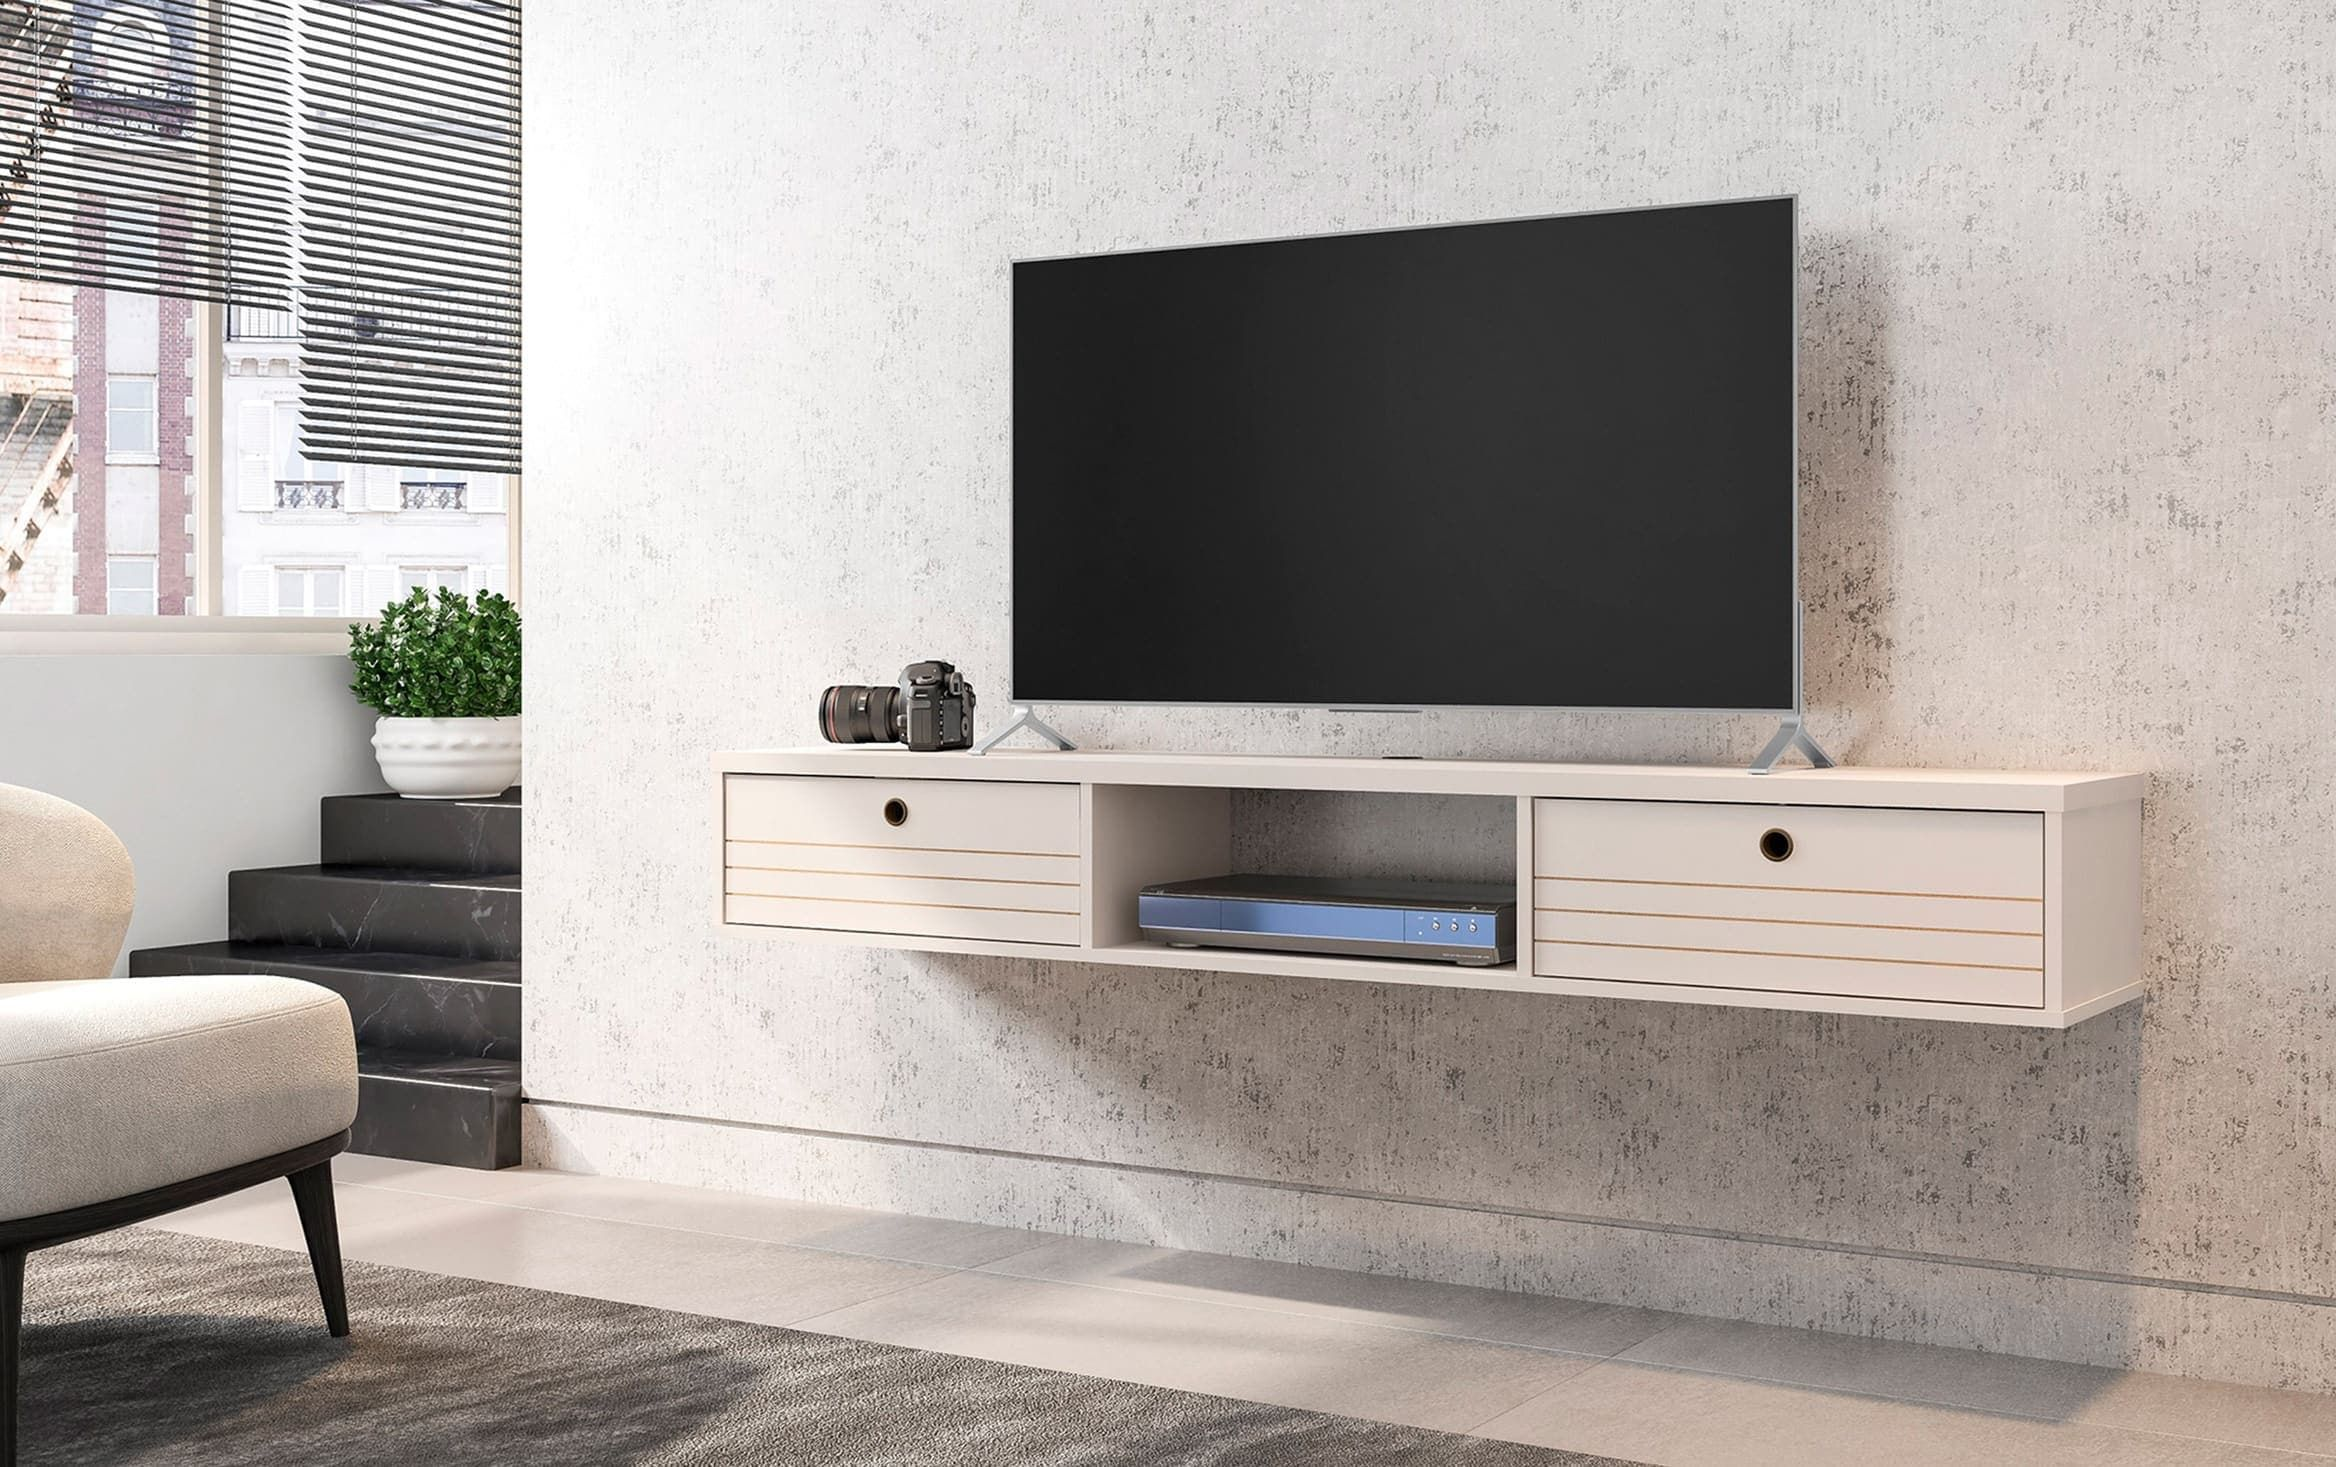 Shiloh Ivory Oak Floating Tv Stand In 2020 Floating Tv Stand Tv Stand Bedroom Tv Stand